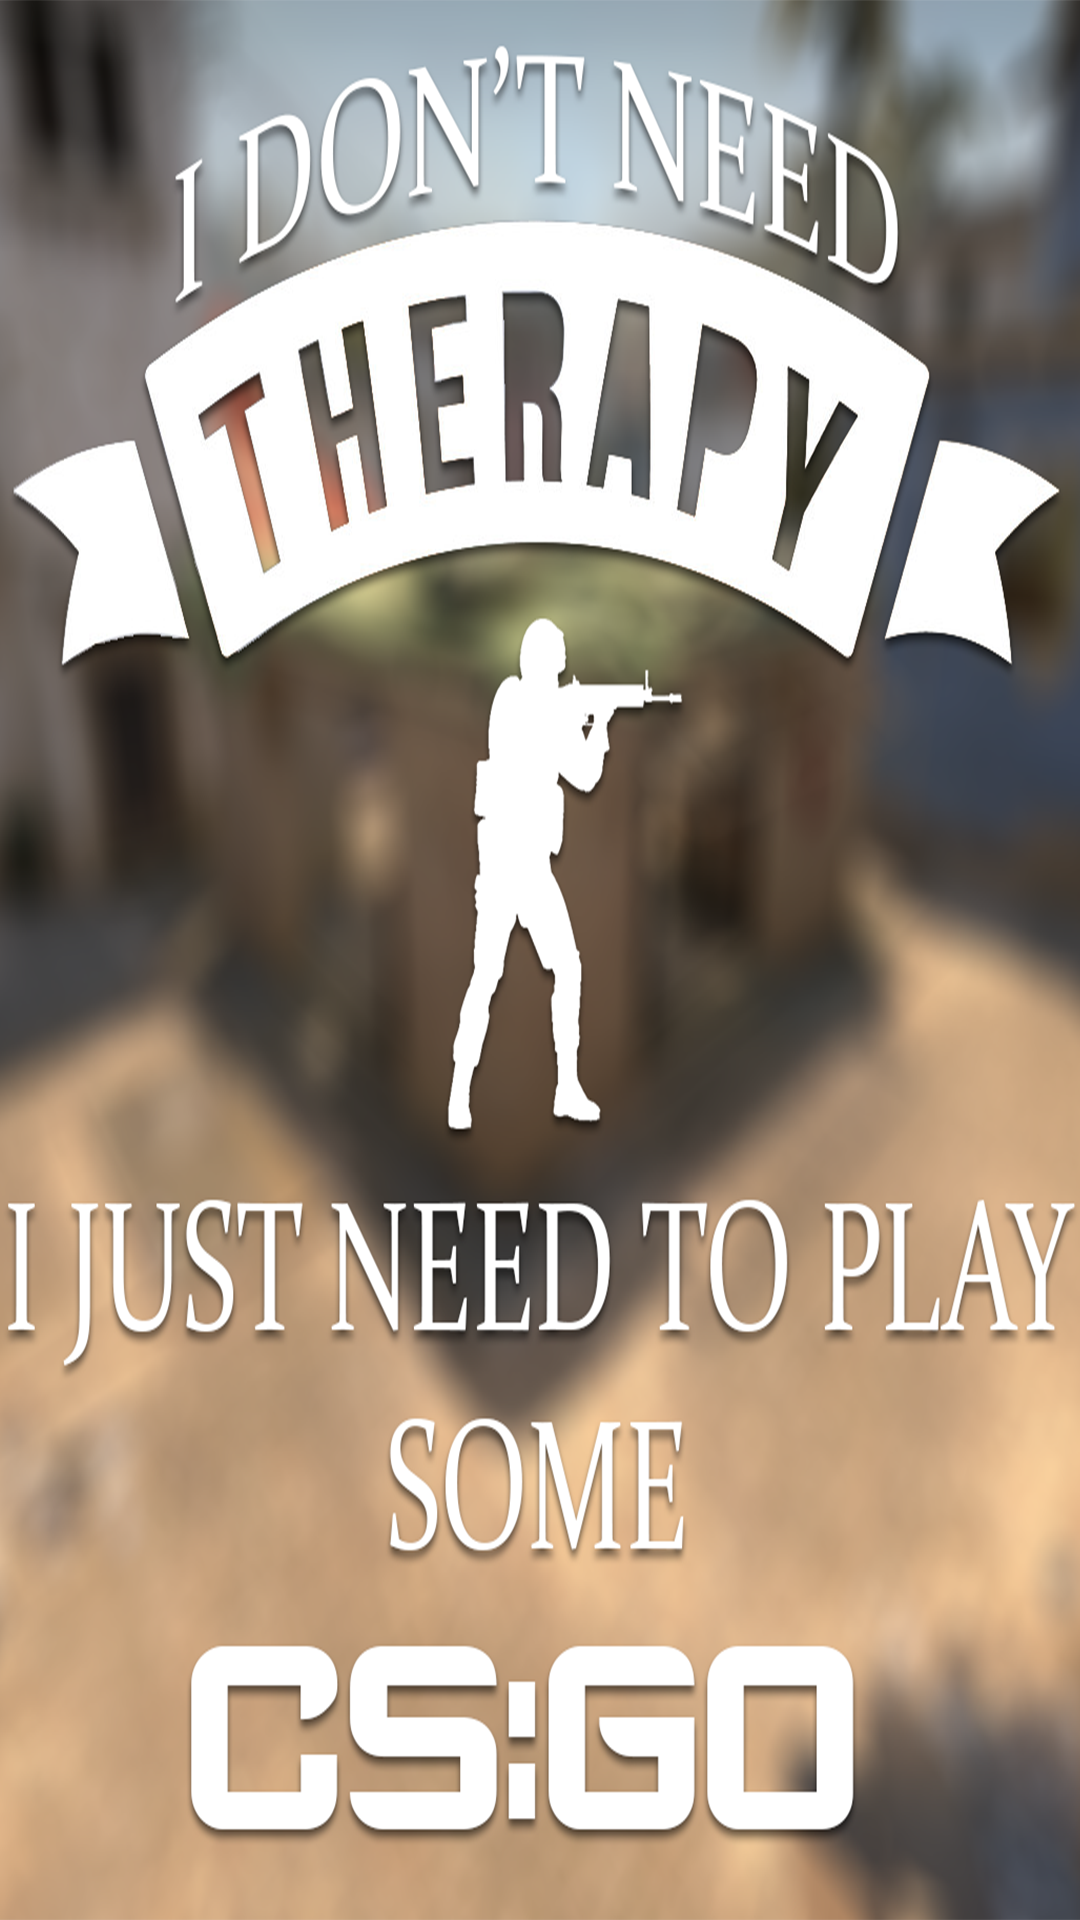 I don't need therapy (Phone)